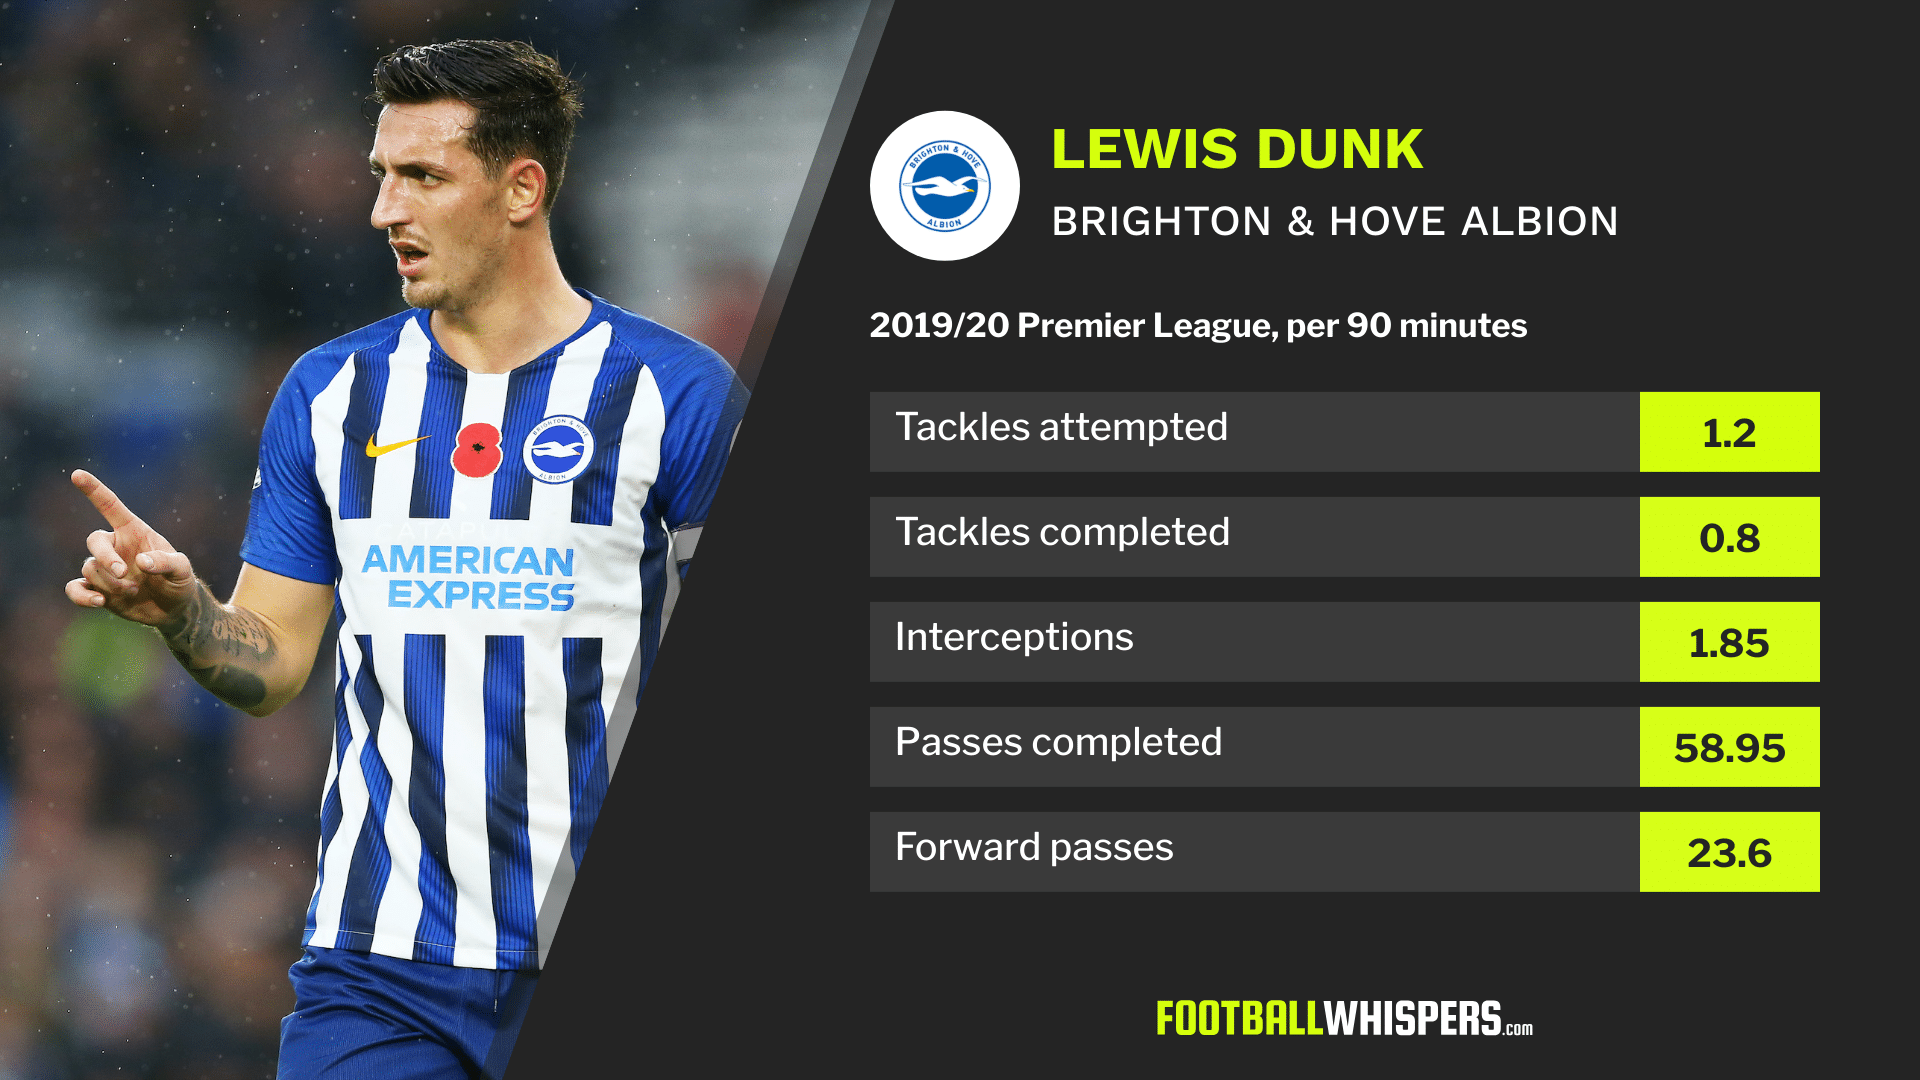 Stats for Brighton & Hove Albion defender Lewis Dunk